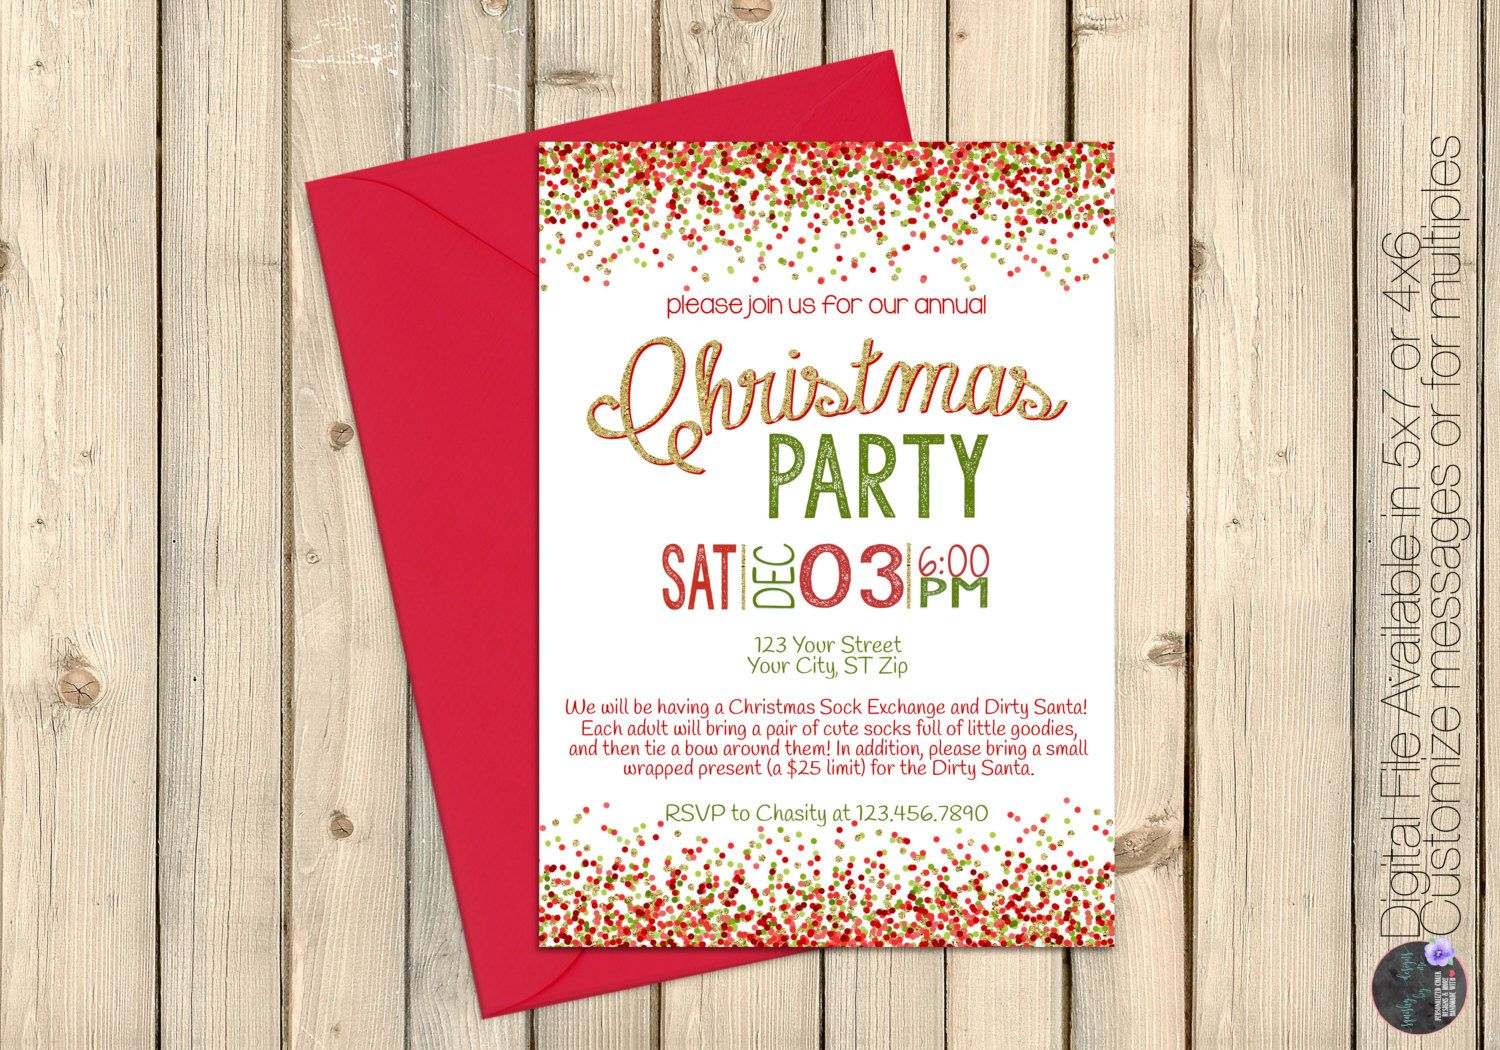 Holiday Party Invitation Red Green e birthday wishes